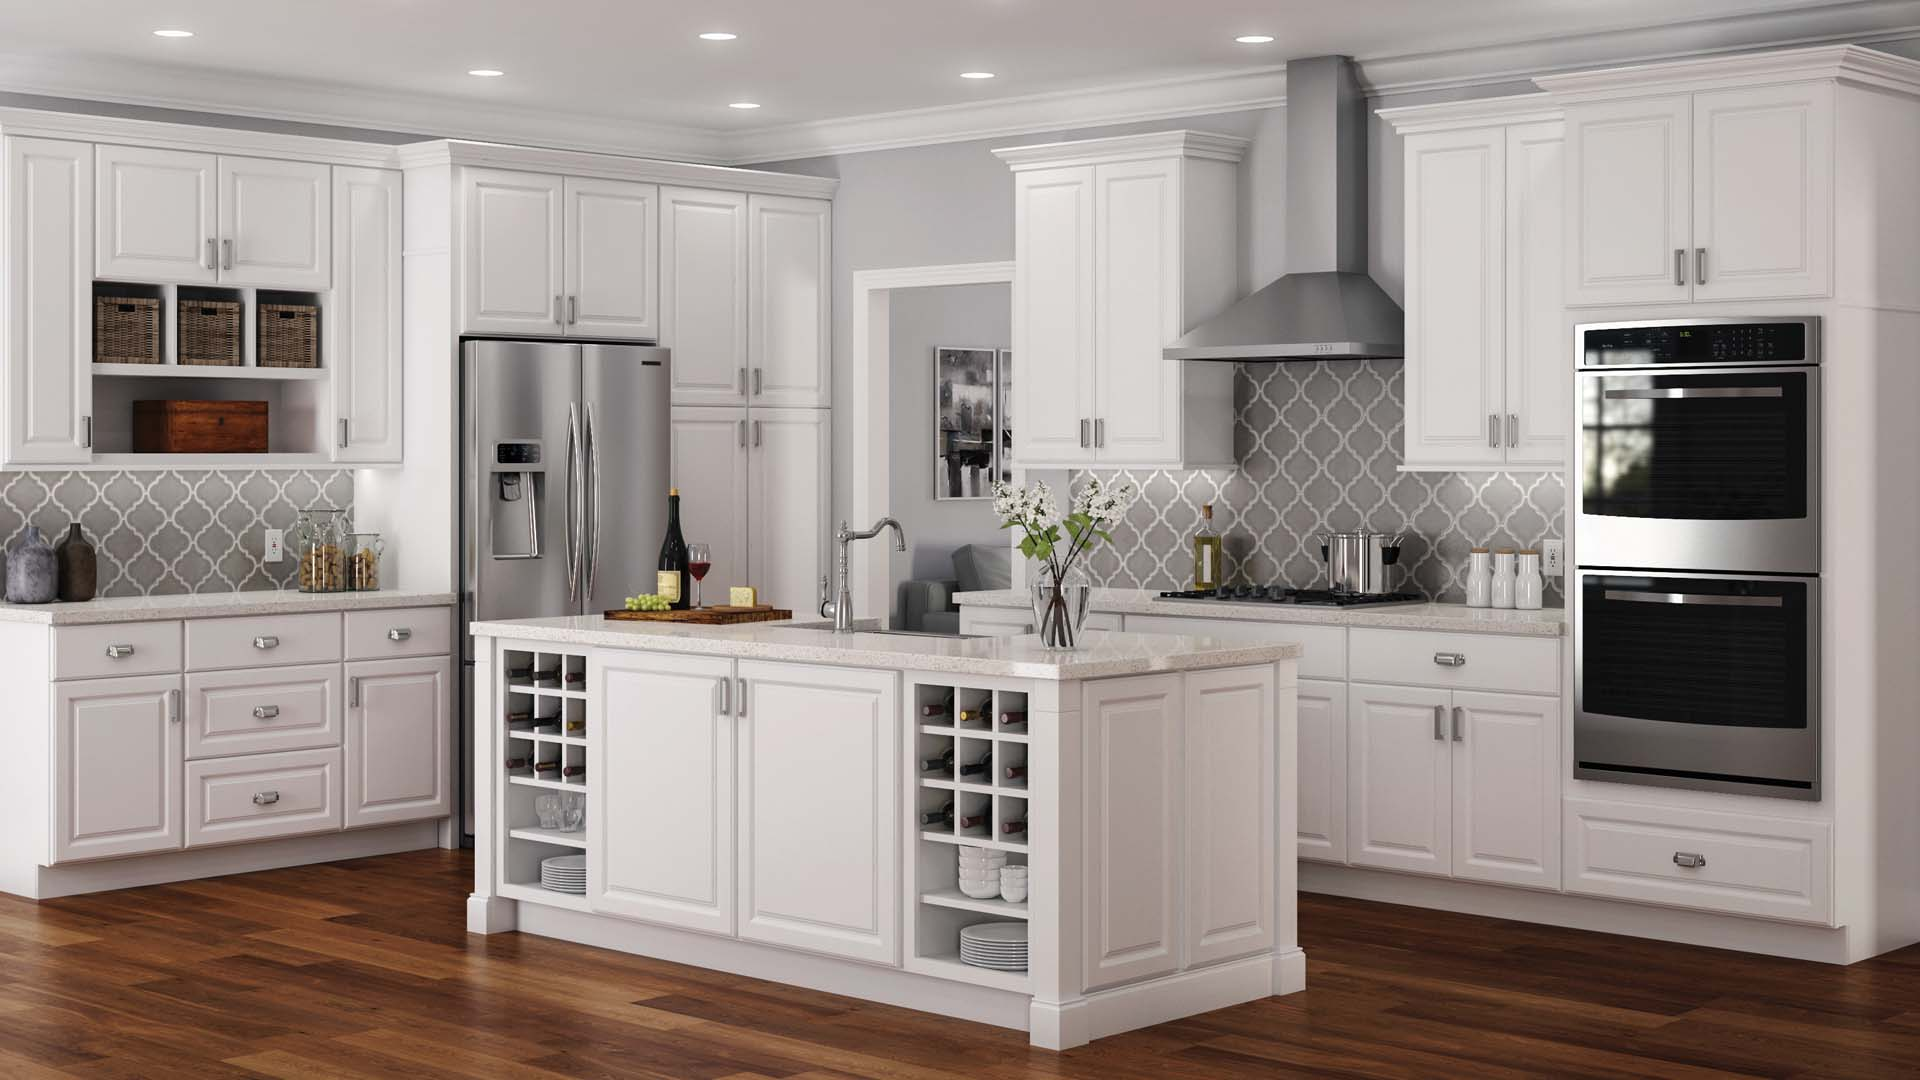 Hampton Cabinet Accessories in White – Kitchen – The Home Depot